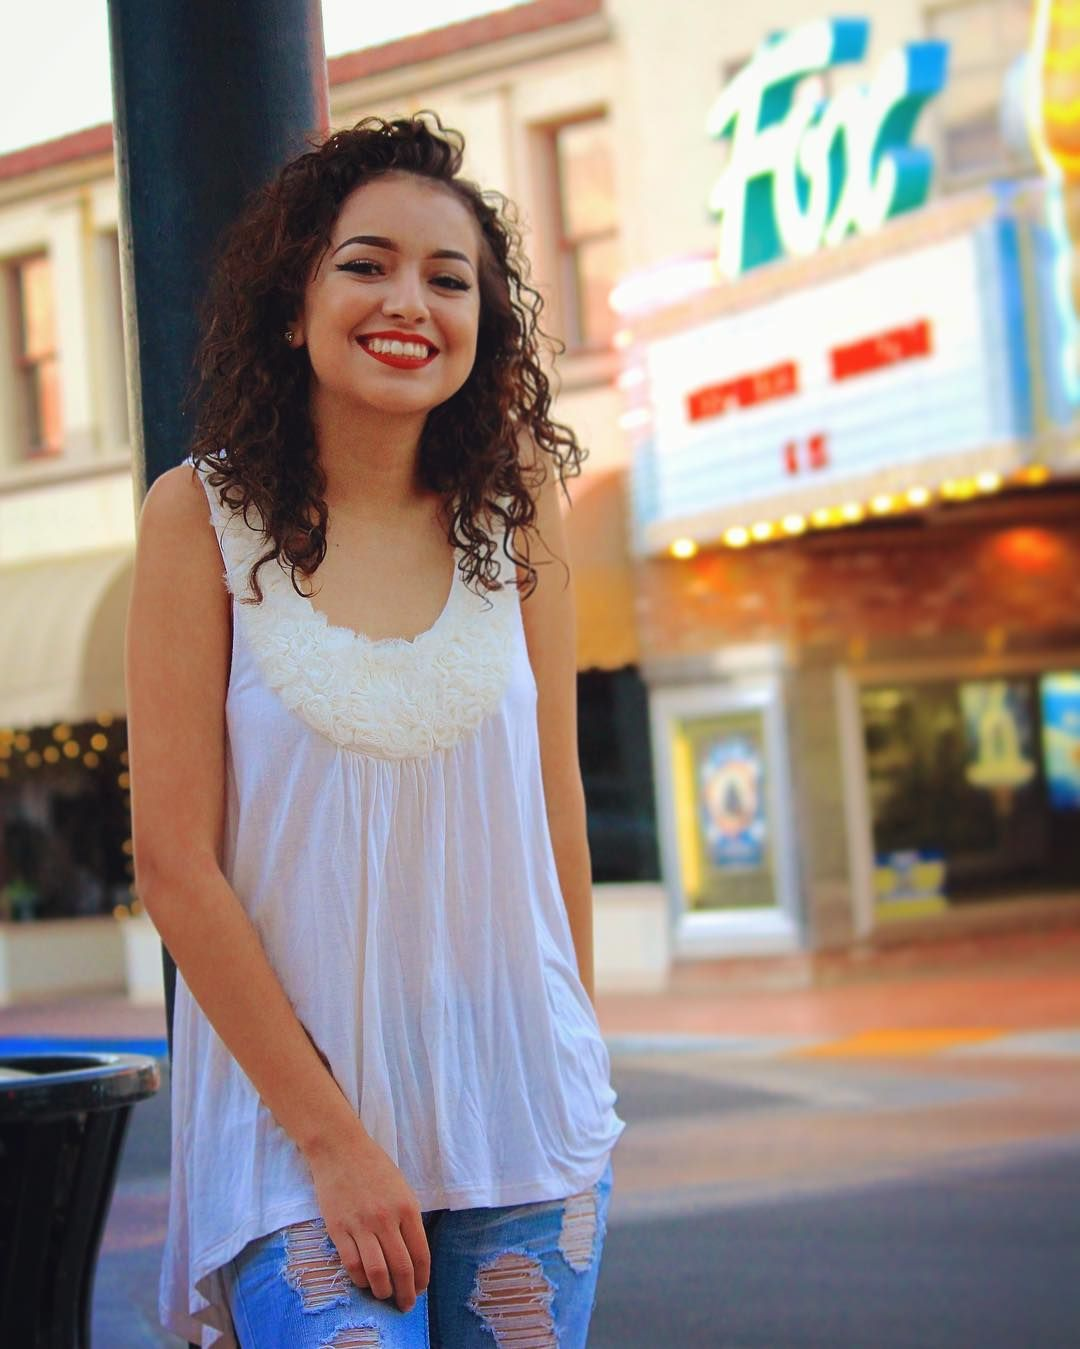 @paulitos_photography... #seniorpictures #photography #friend #beautiful #canon #colorful #taftfoxtheater